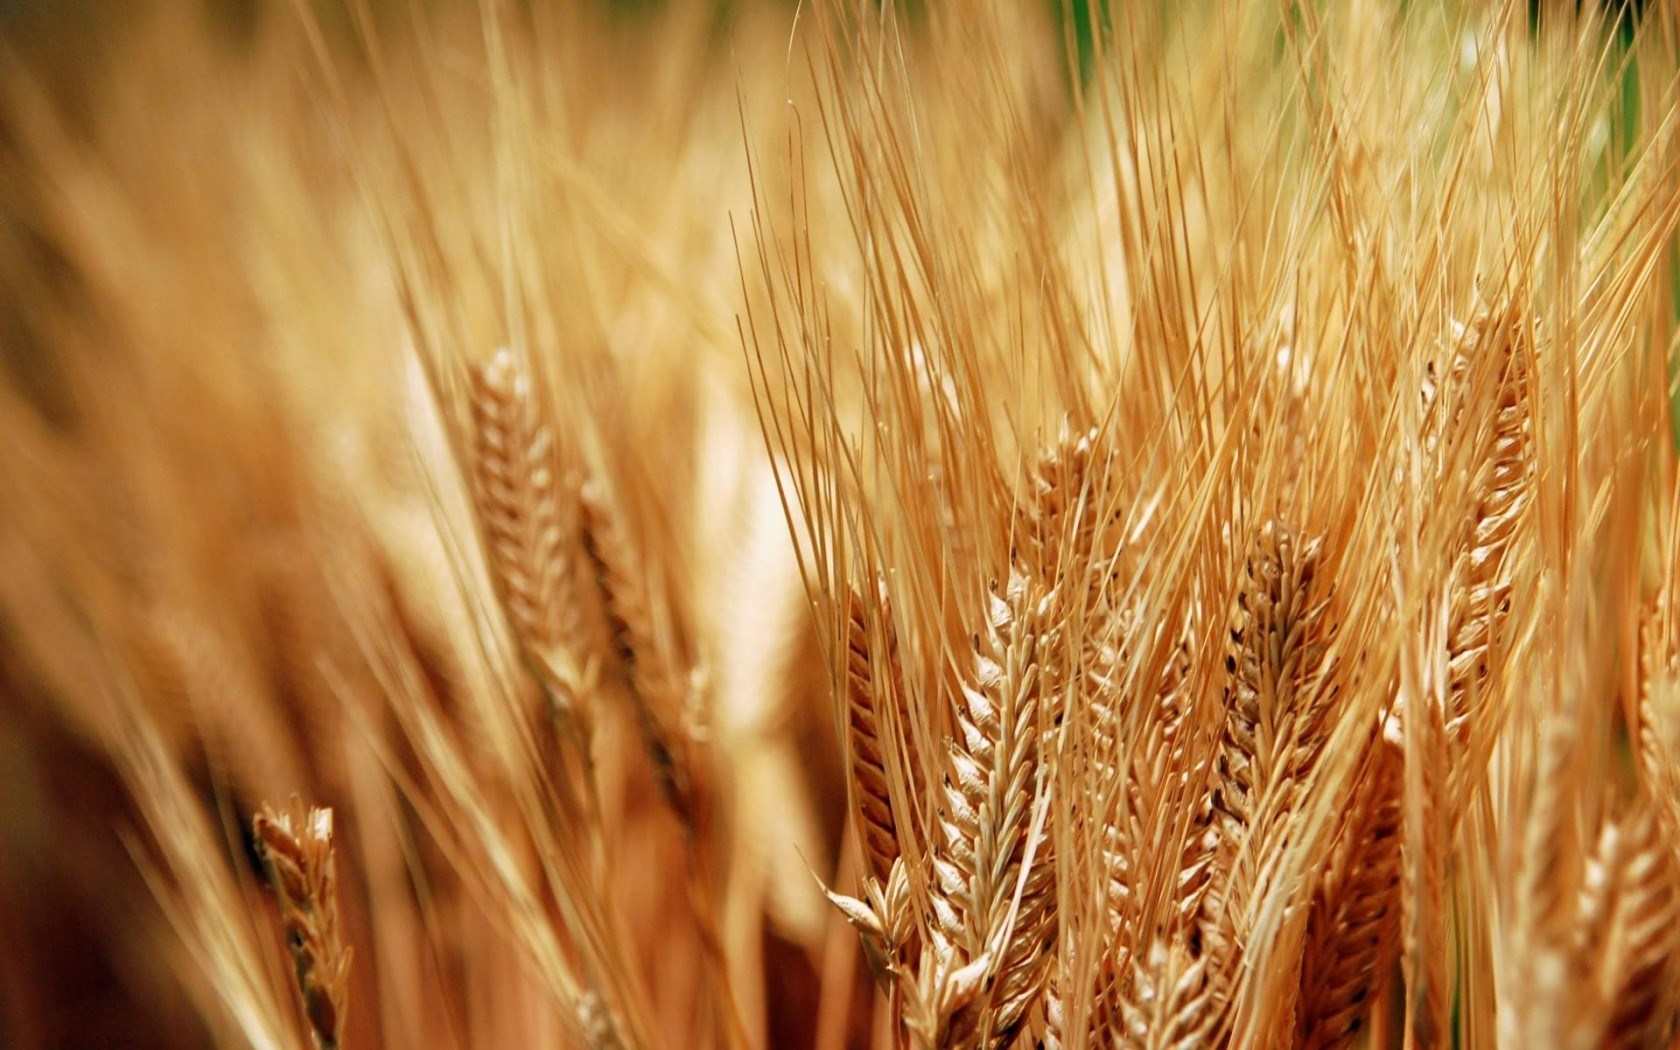 Nature Wheat Plants Close-Up HD Wallpaper